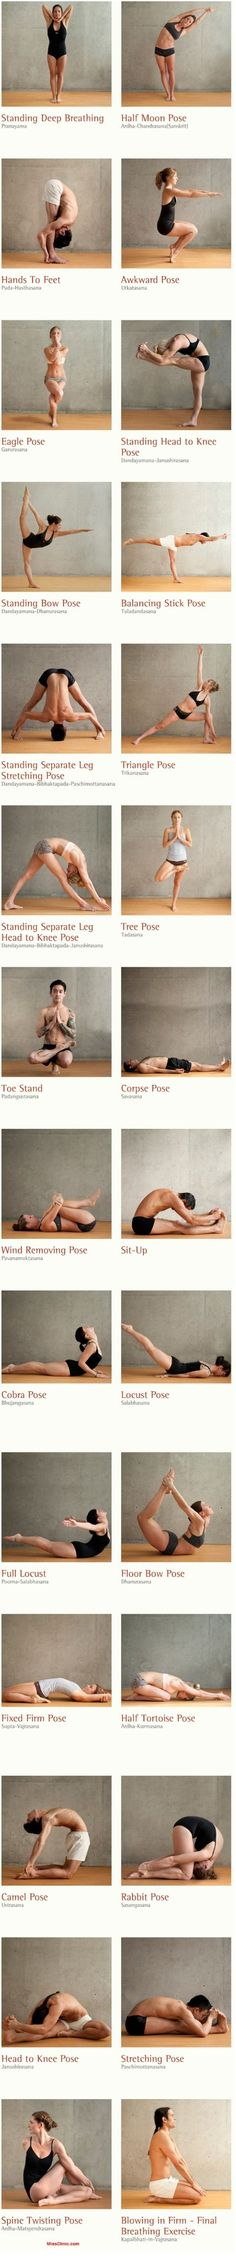 "26 Healthy Yoga Postures .. and modern dance poses ~ They should label this ""poses I'll never be able to do."" Except for the Corpse. I might be able to handle that one."